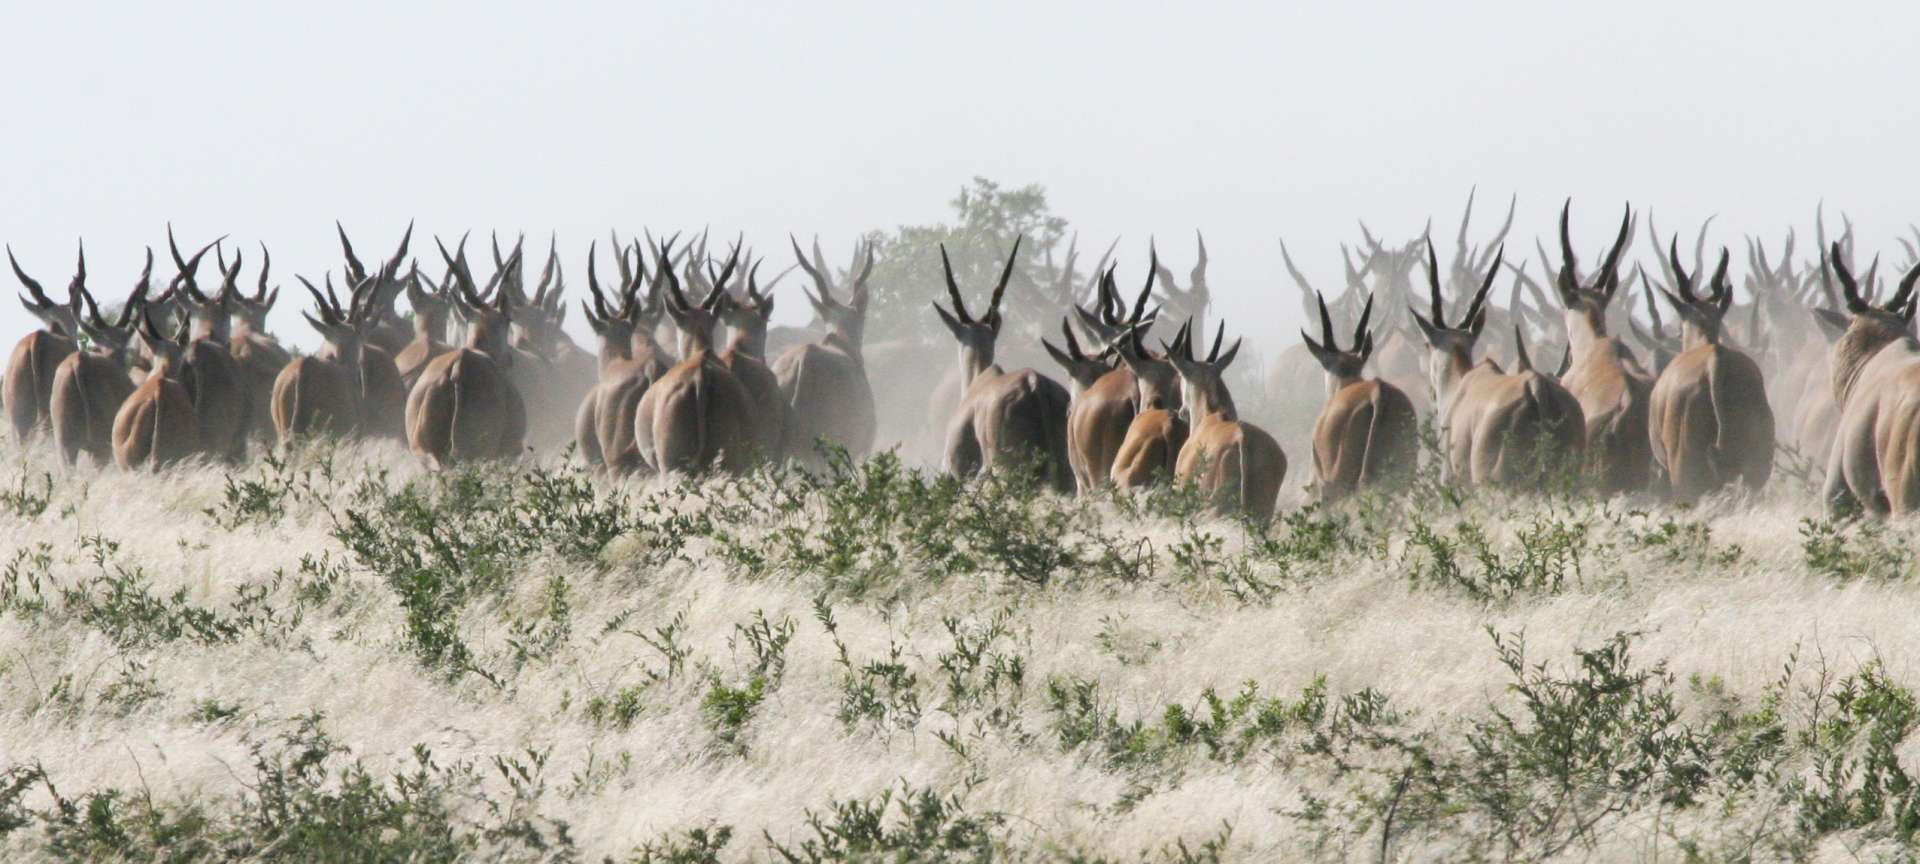 Wildlife is a major attraction in Botswana